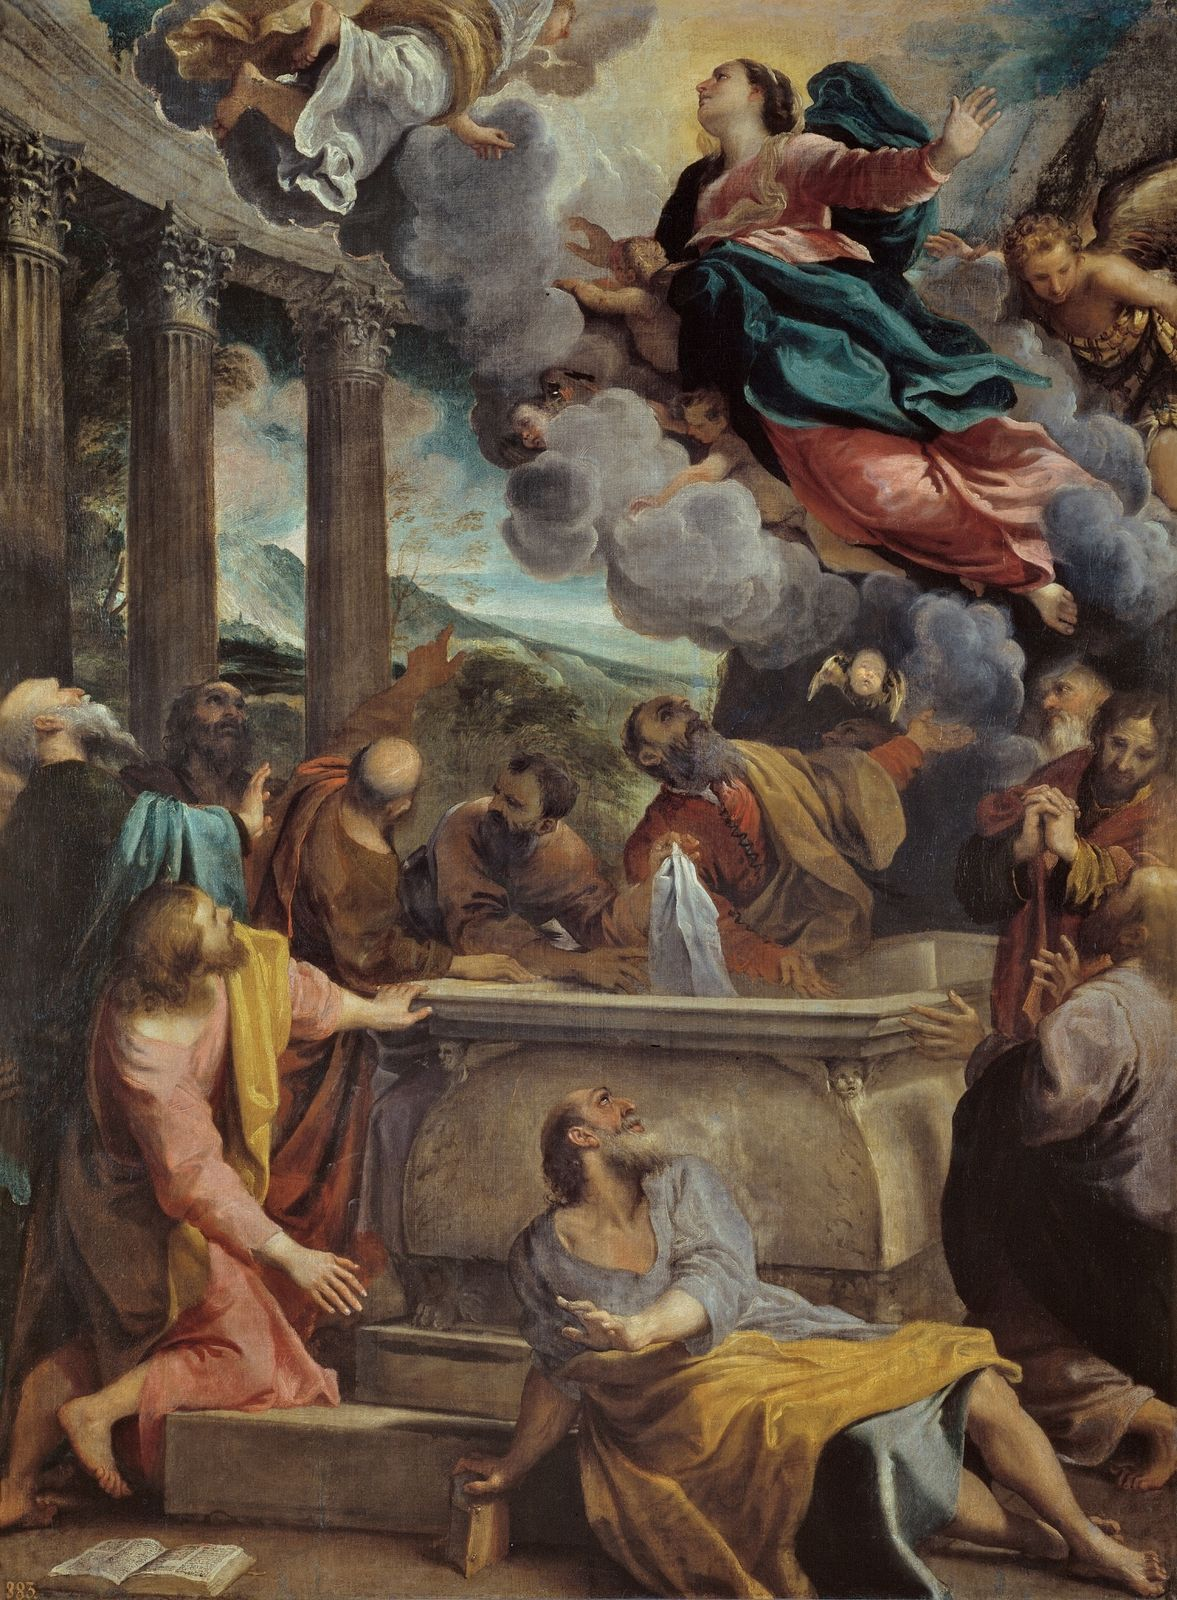 Assumption Of The Virgin Mary By Annibale Carracci